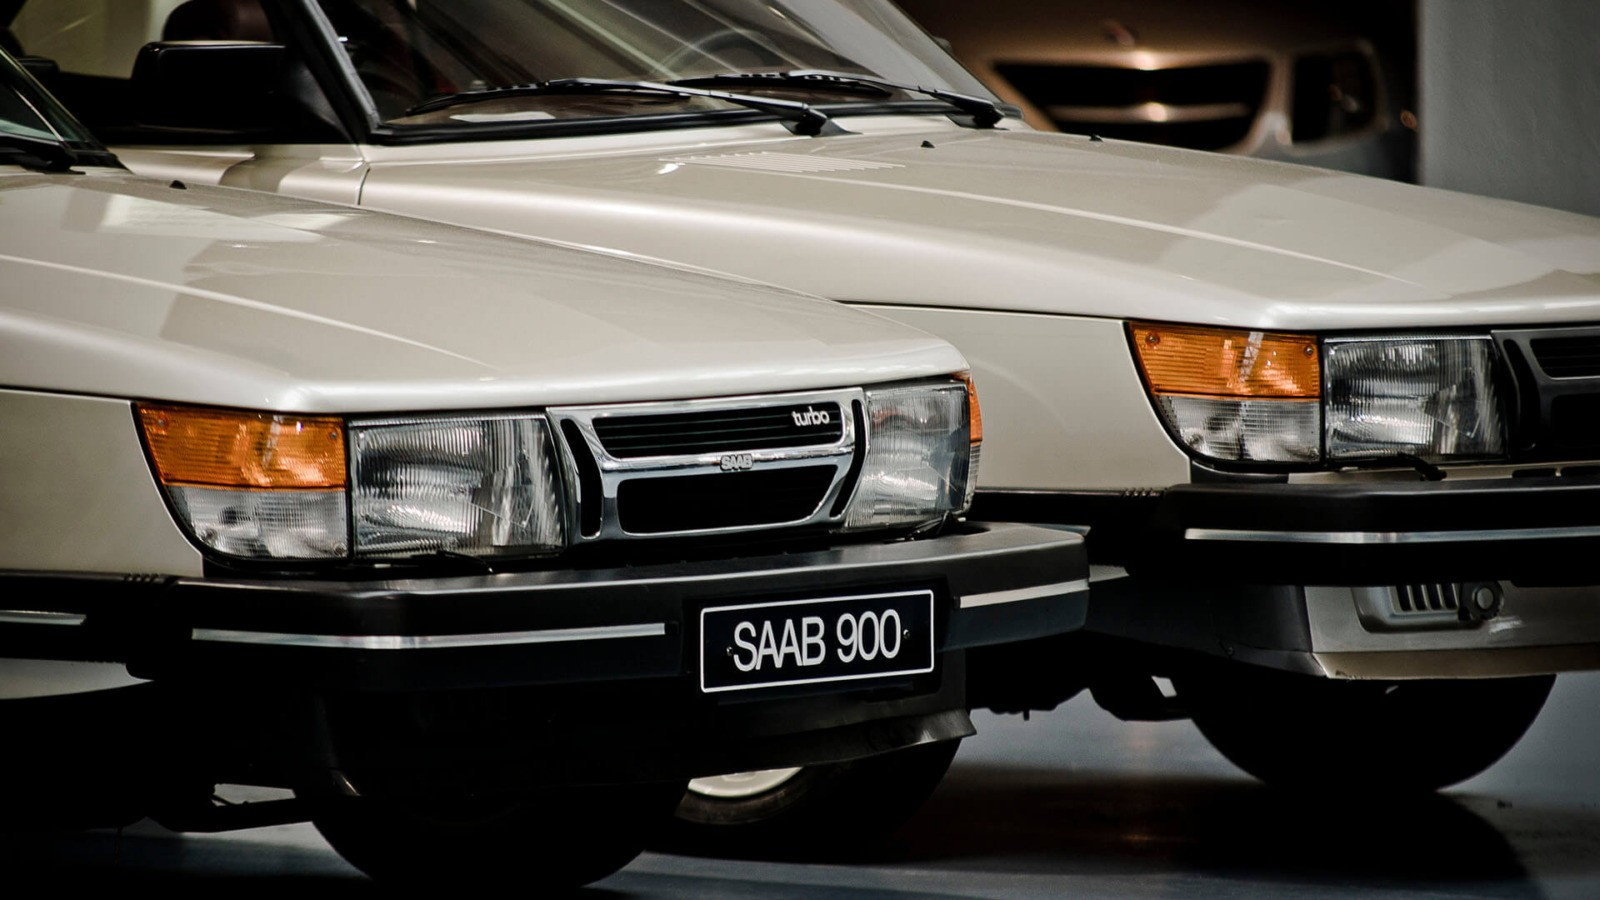 SAAB 900 turbo aero parts | 900classic.pl